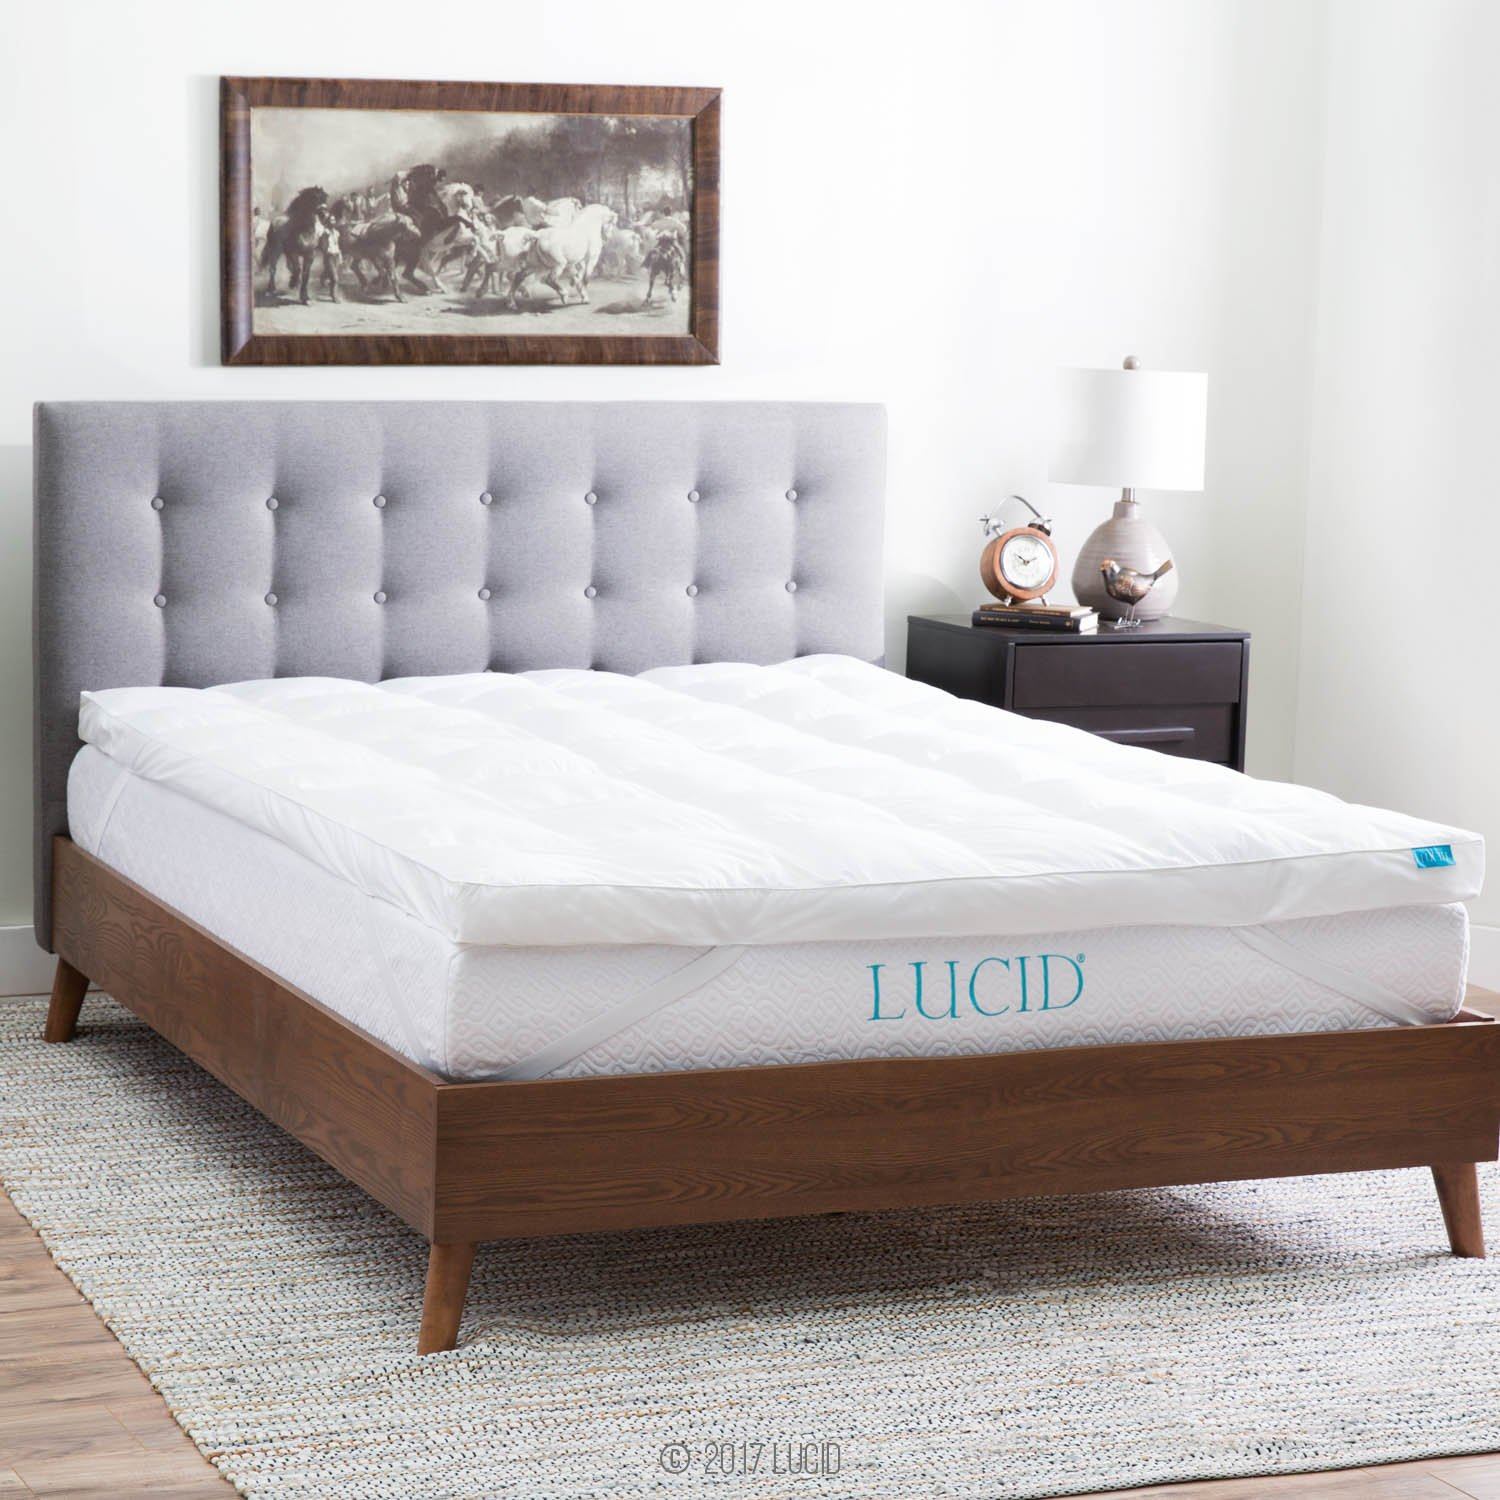 LUCID Plush Down Alternative Fiber Bed Topper - Allergen Free - Full Size